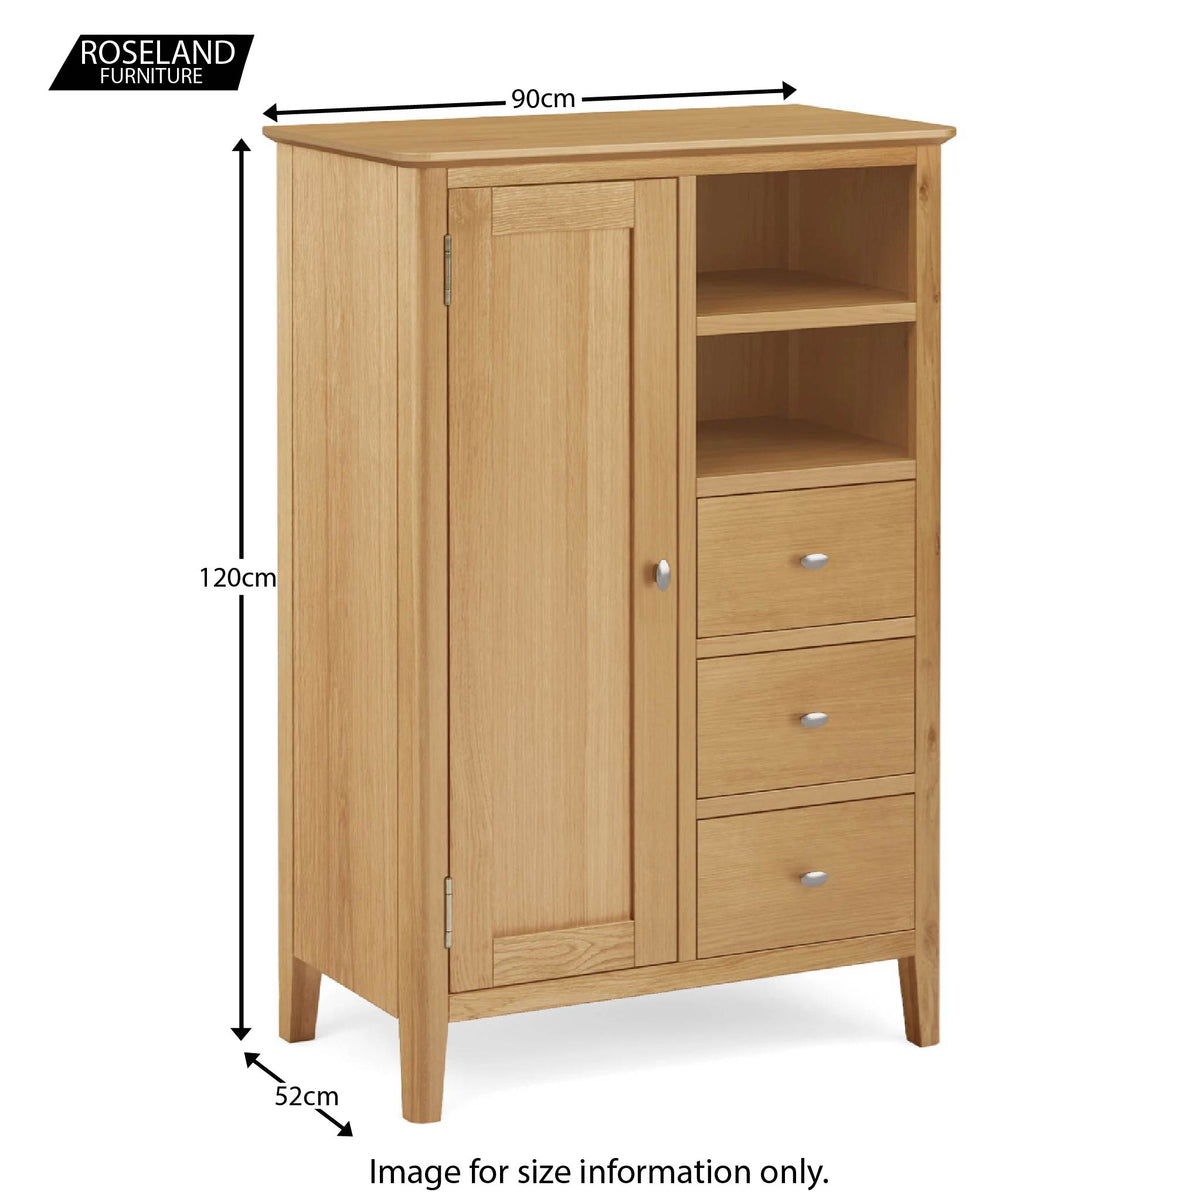 Alba Oak Combination Wardrobe - Size guide